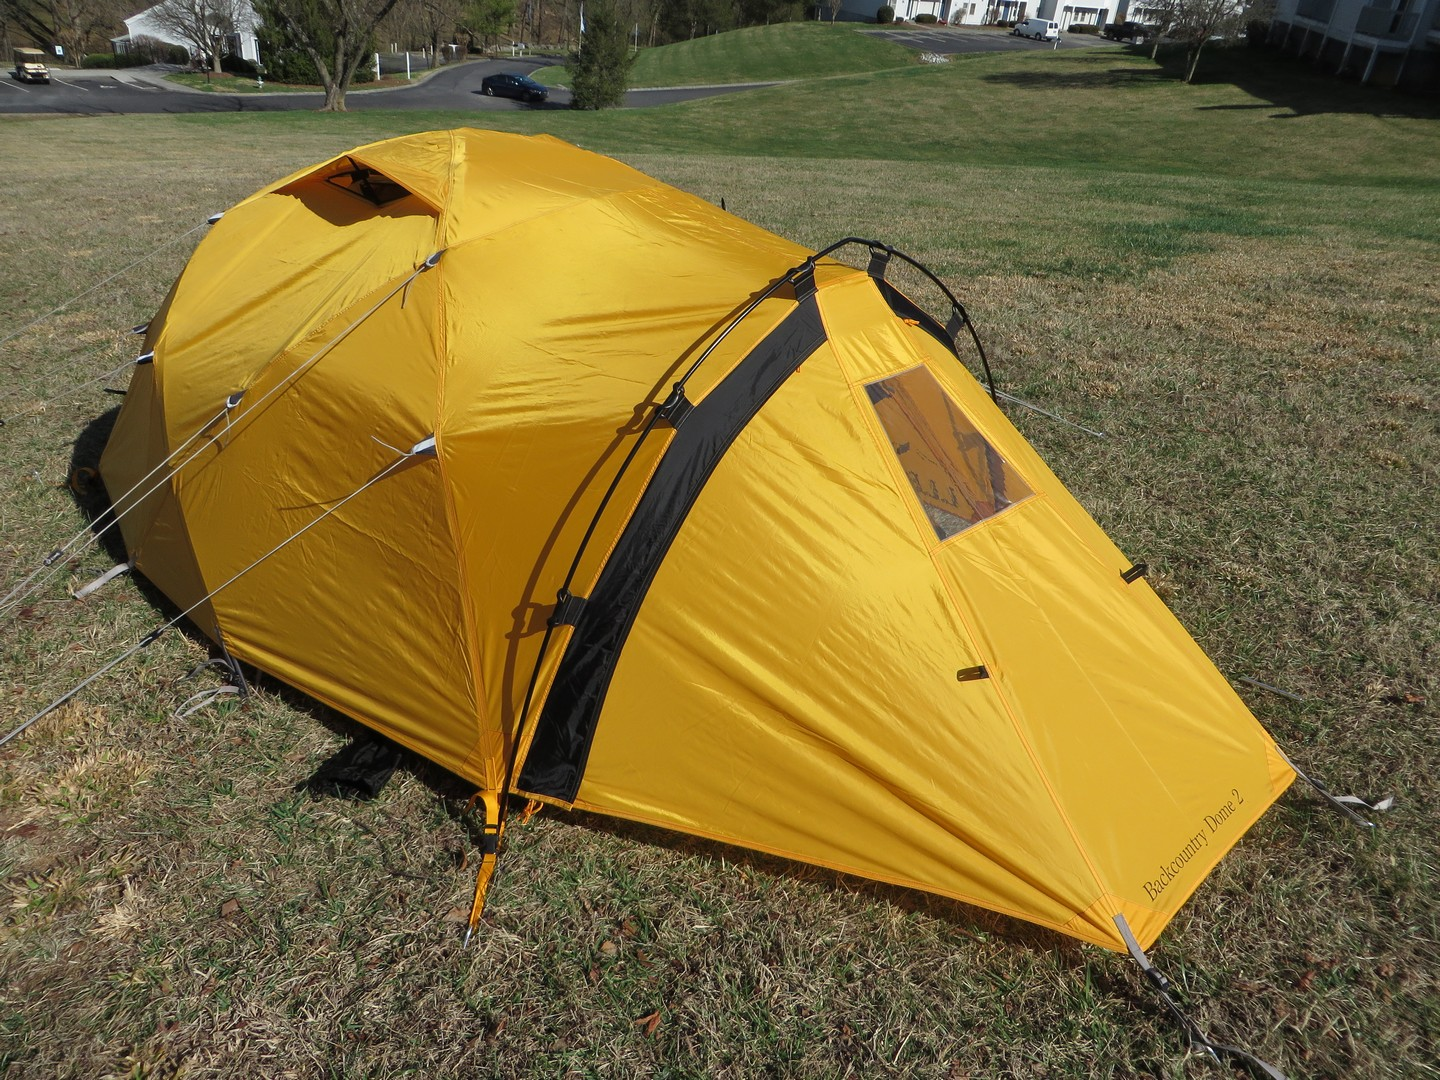 L.L.Bean Backcountry 2 Dome Tent Review : back country tents - memphite.com